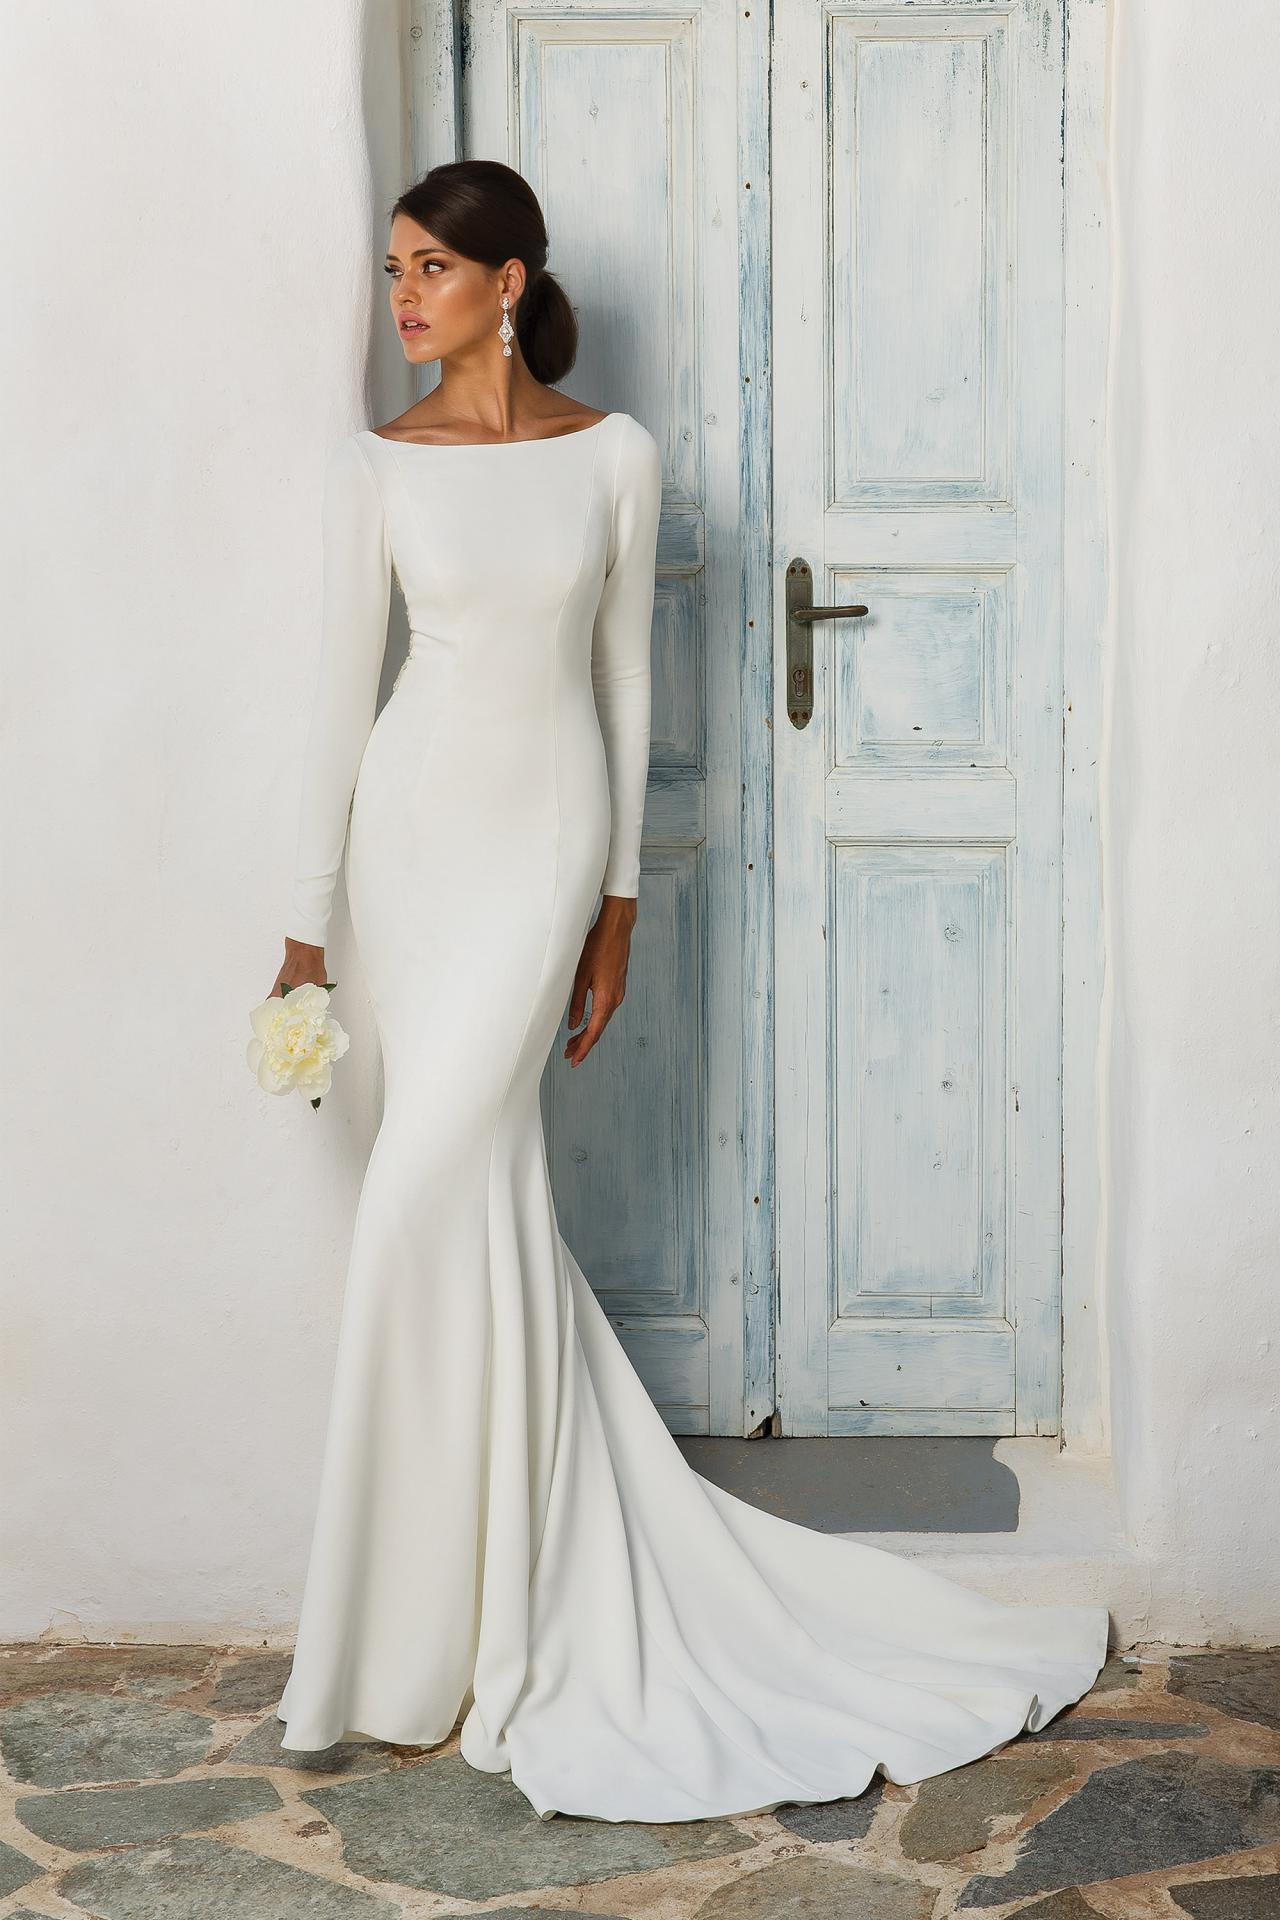 c2c5bfd61ff Bateau White Satin Mermaid Wedding Dress With Long Sleeves And Open Back on  Luulla